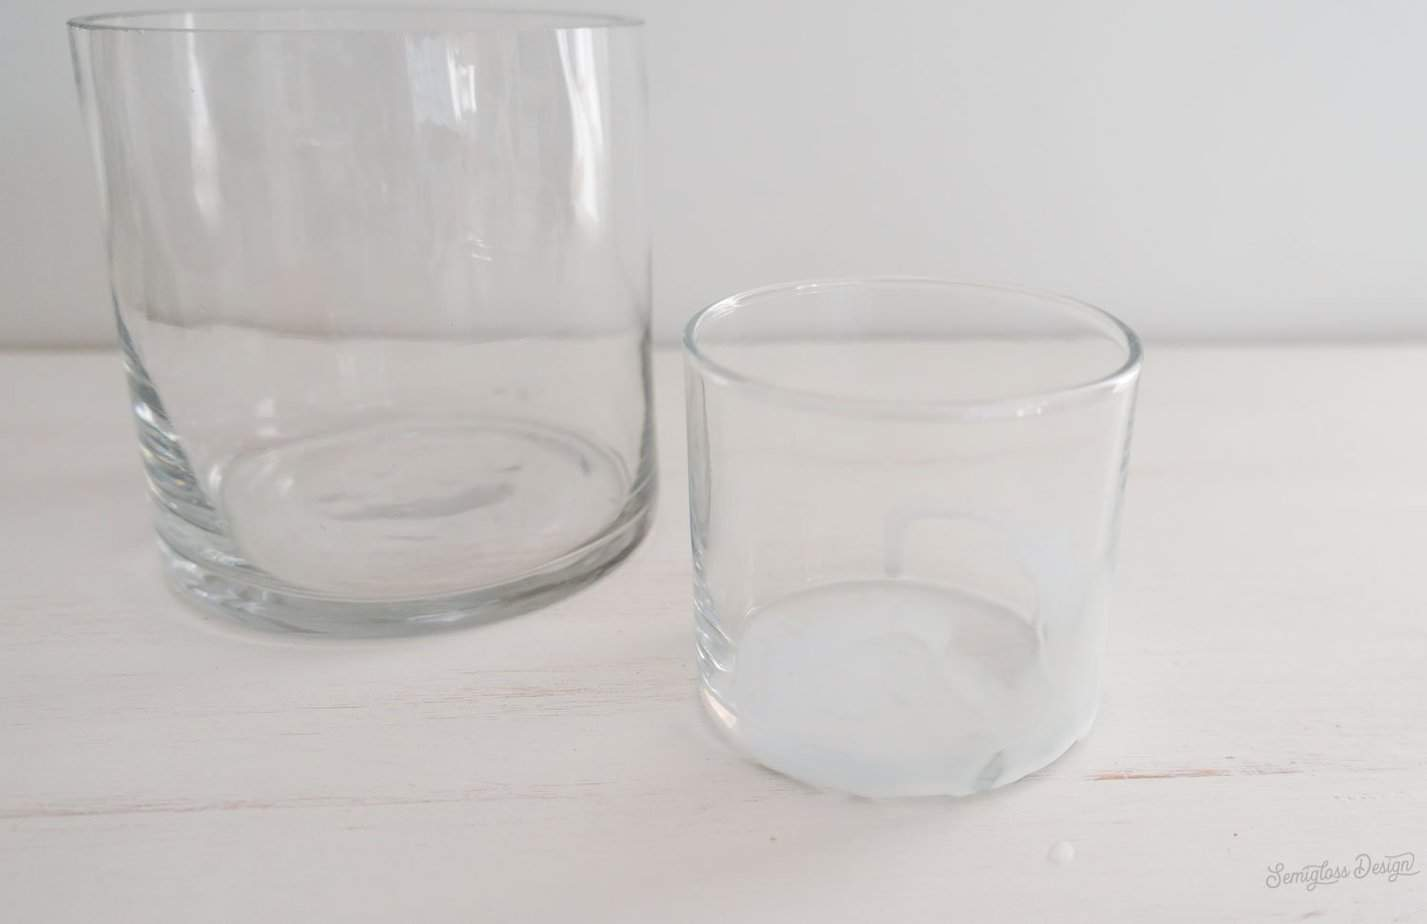 adhesive on glass candle holder